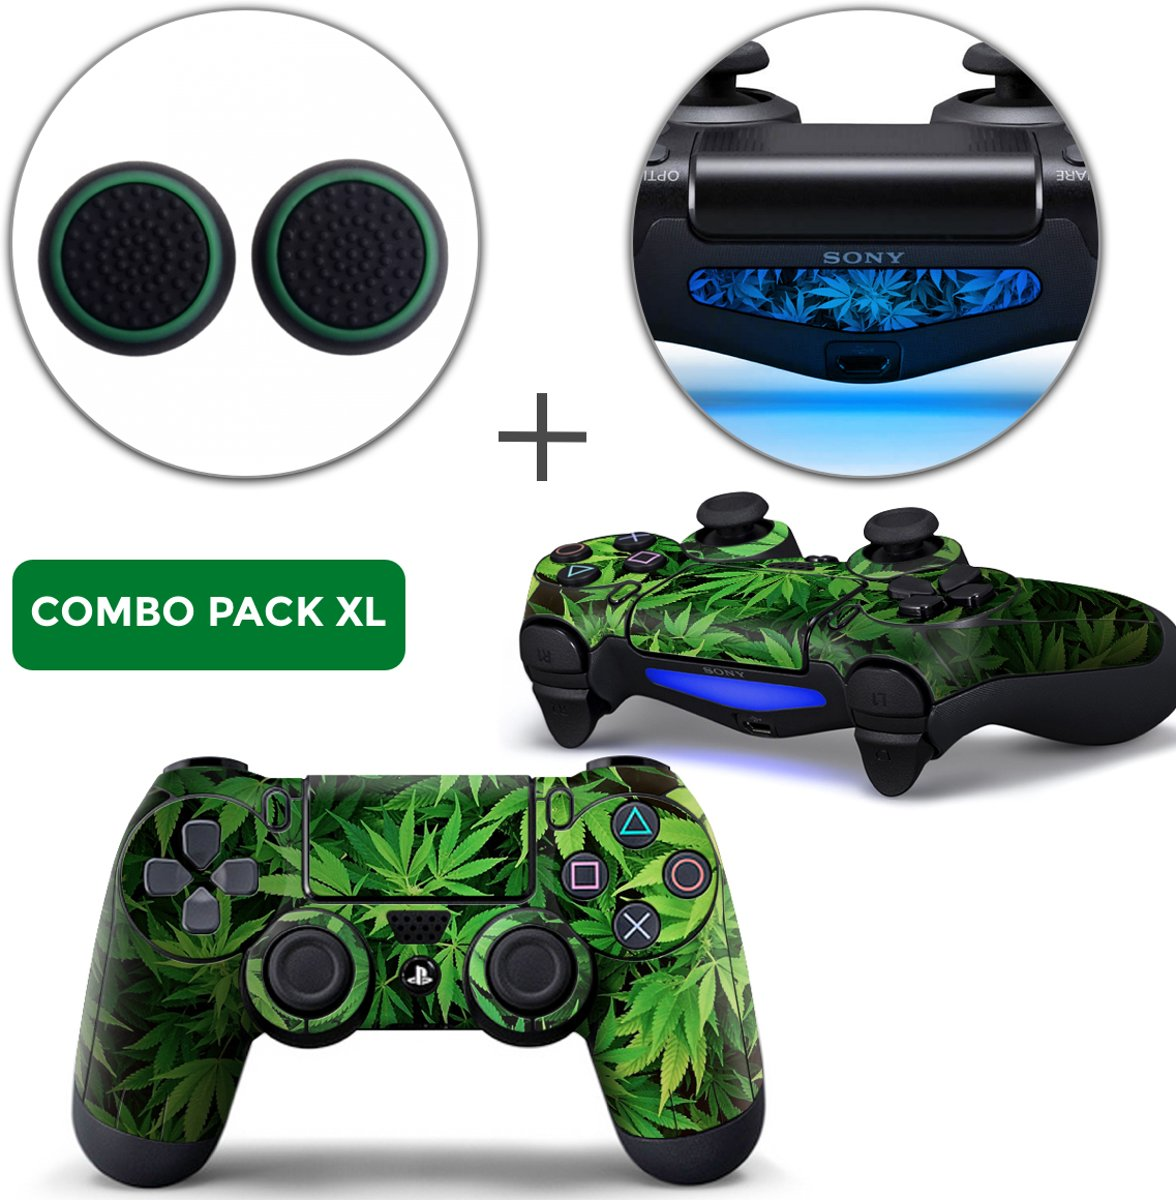 Weed Combo Pack XL - PS4 Controller Skins PlayStation Stickers + Thumb Grips + Lightbar Skin Sticker